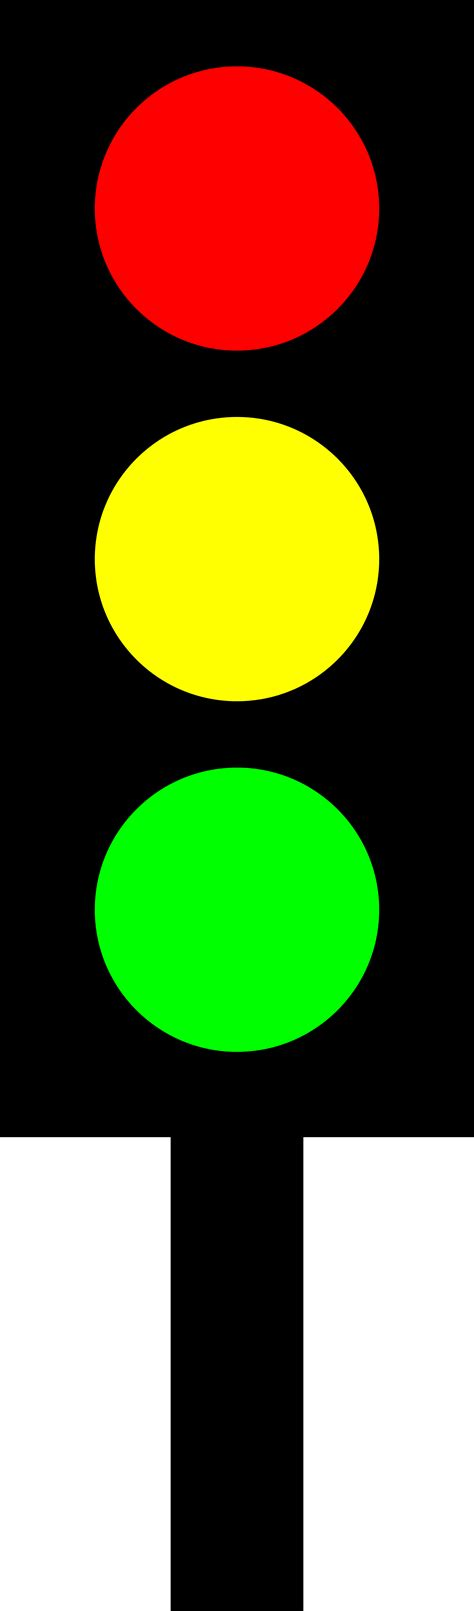 traffic light traffic light icon pixshark com images galleries